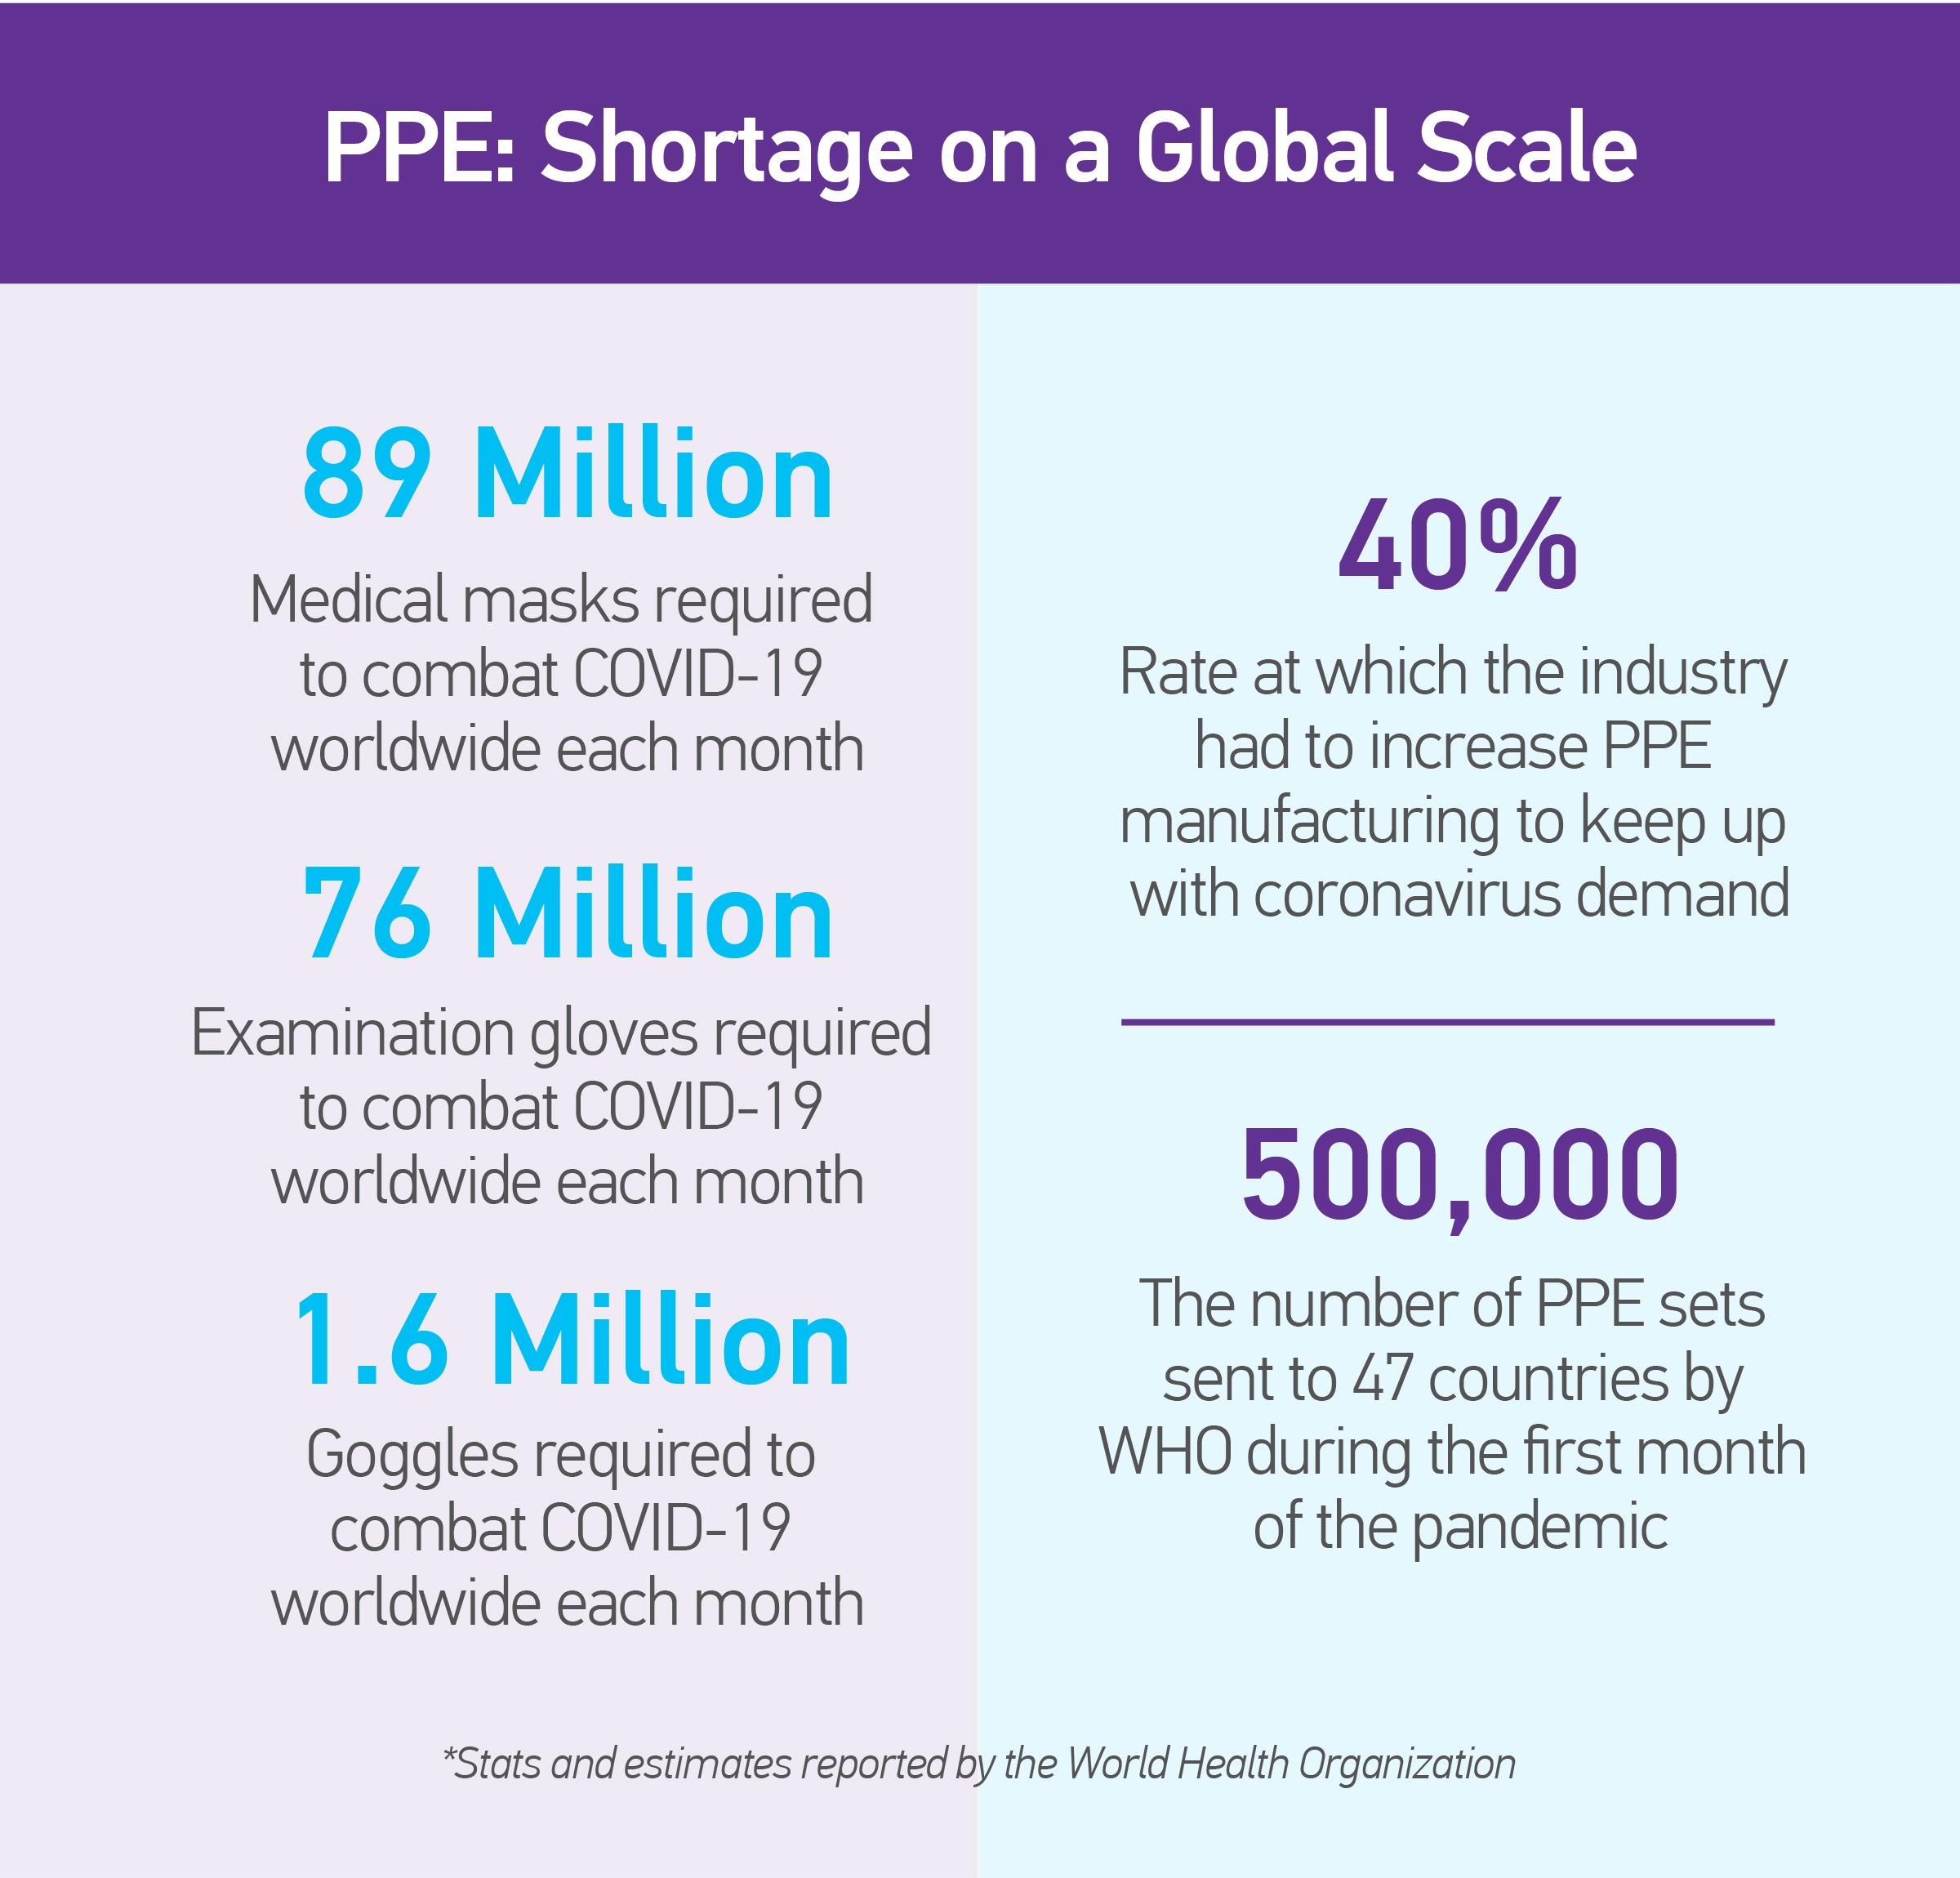 PPE: shortage on a global scale